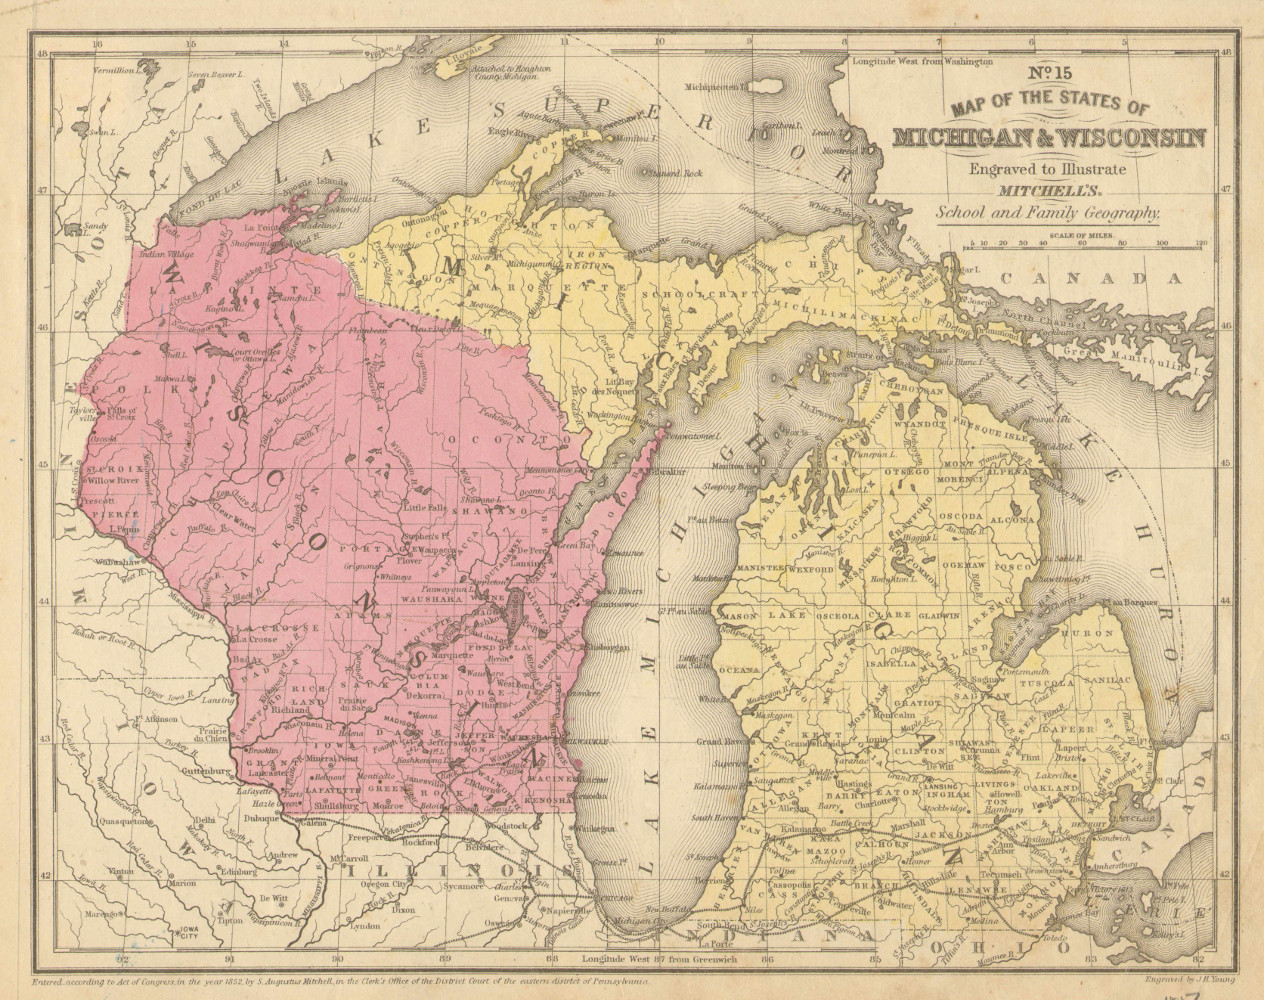 Map of the states of Wisconsin and Michigan, 1852.